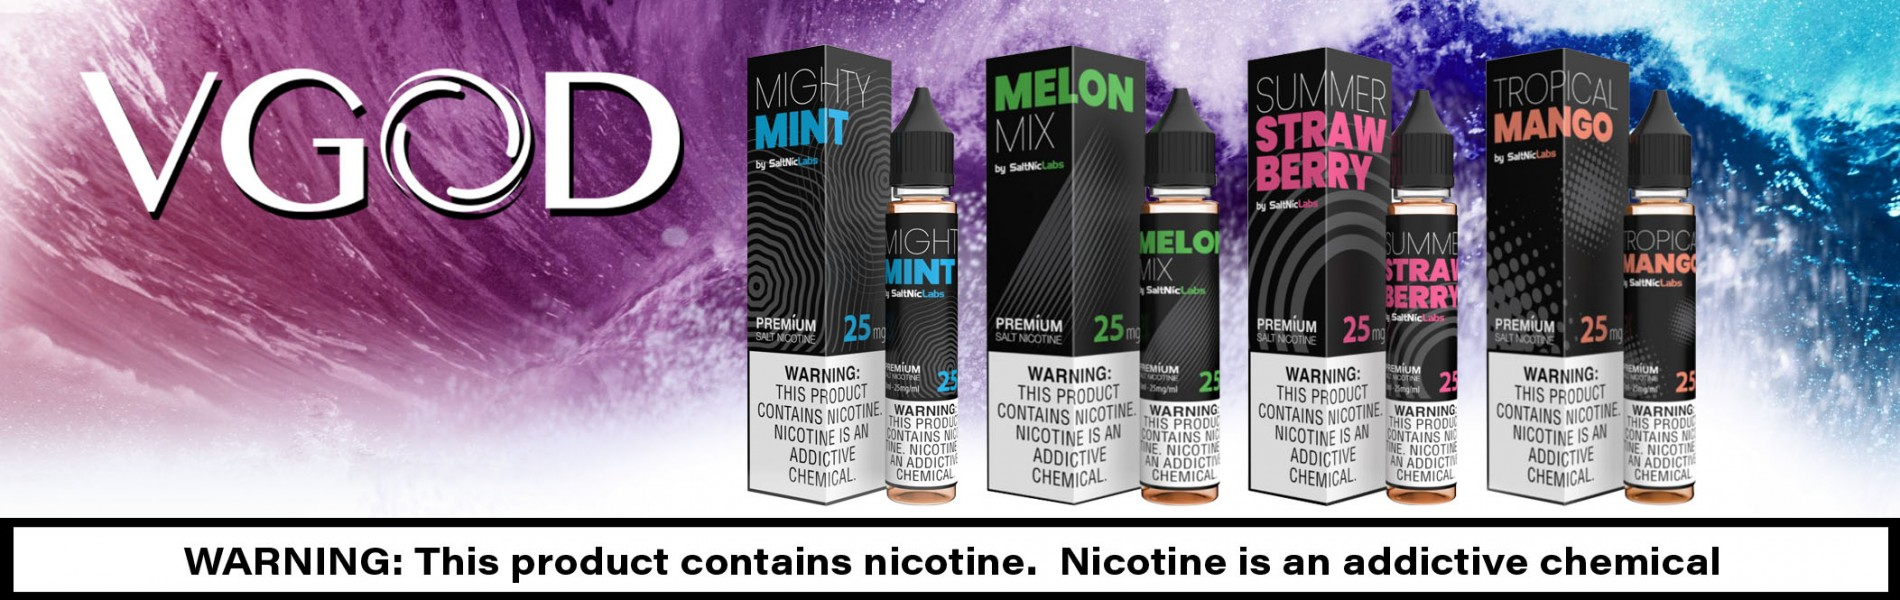 VGod SaltNicLabs E-Juices